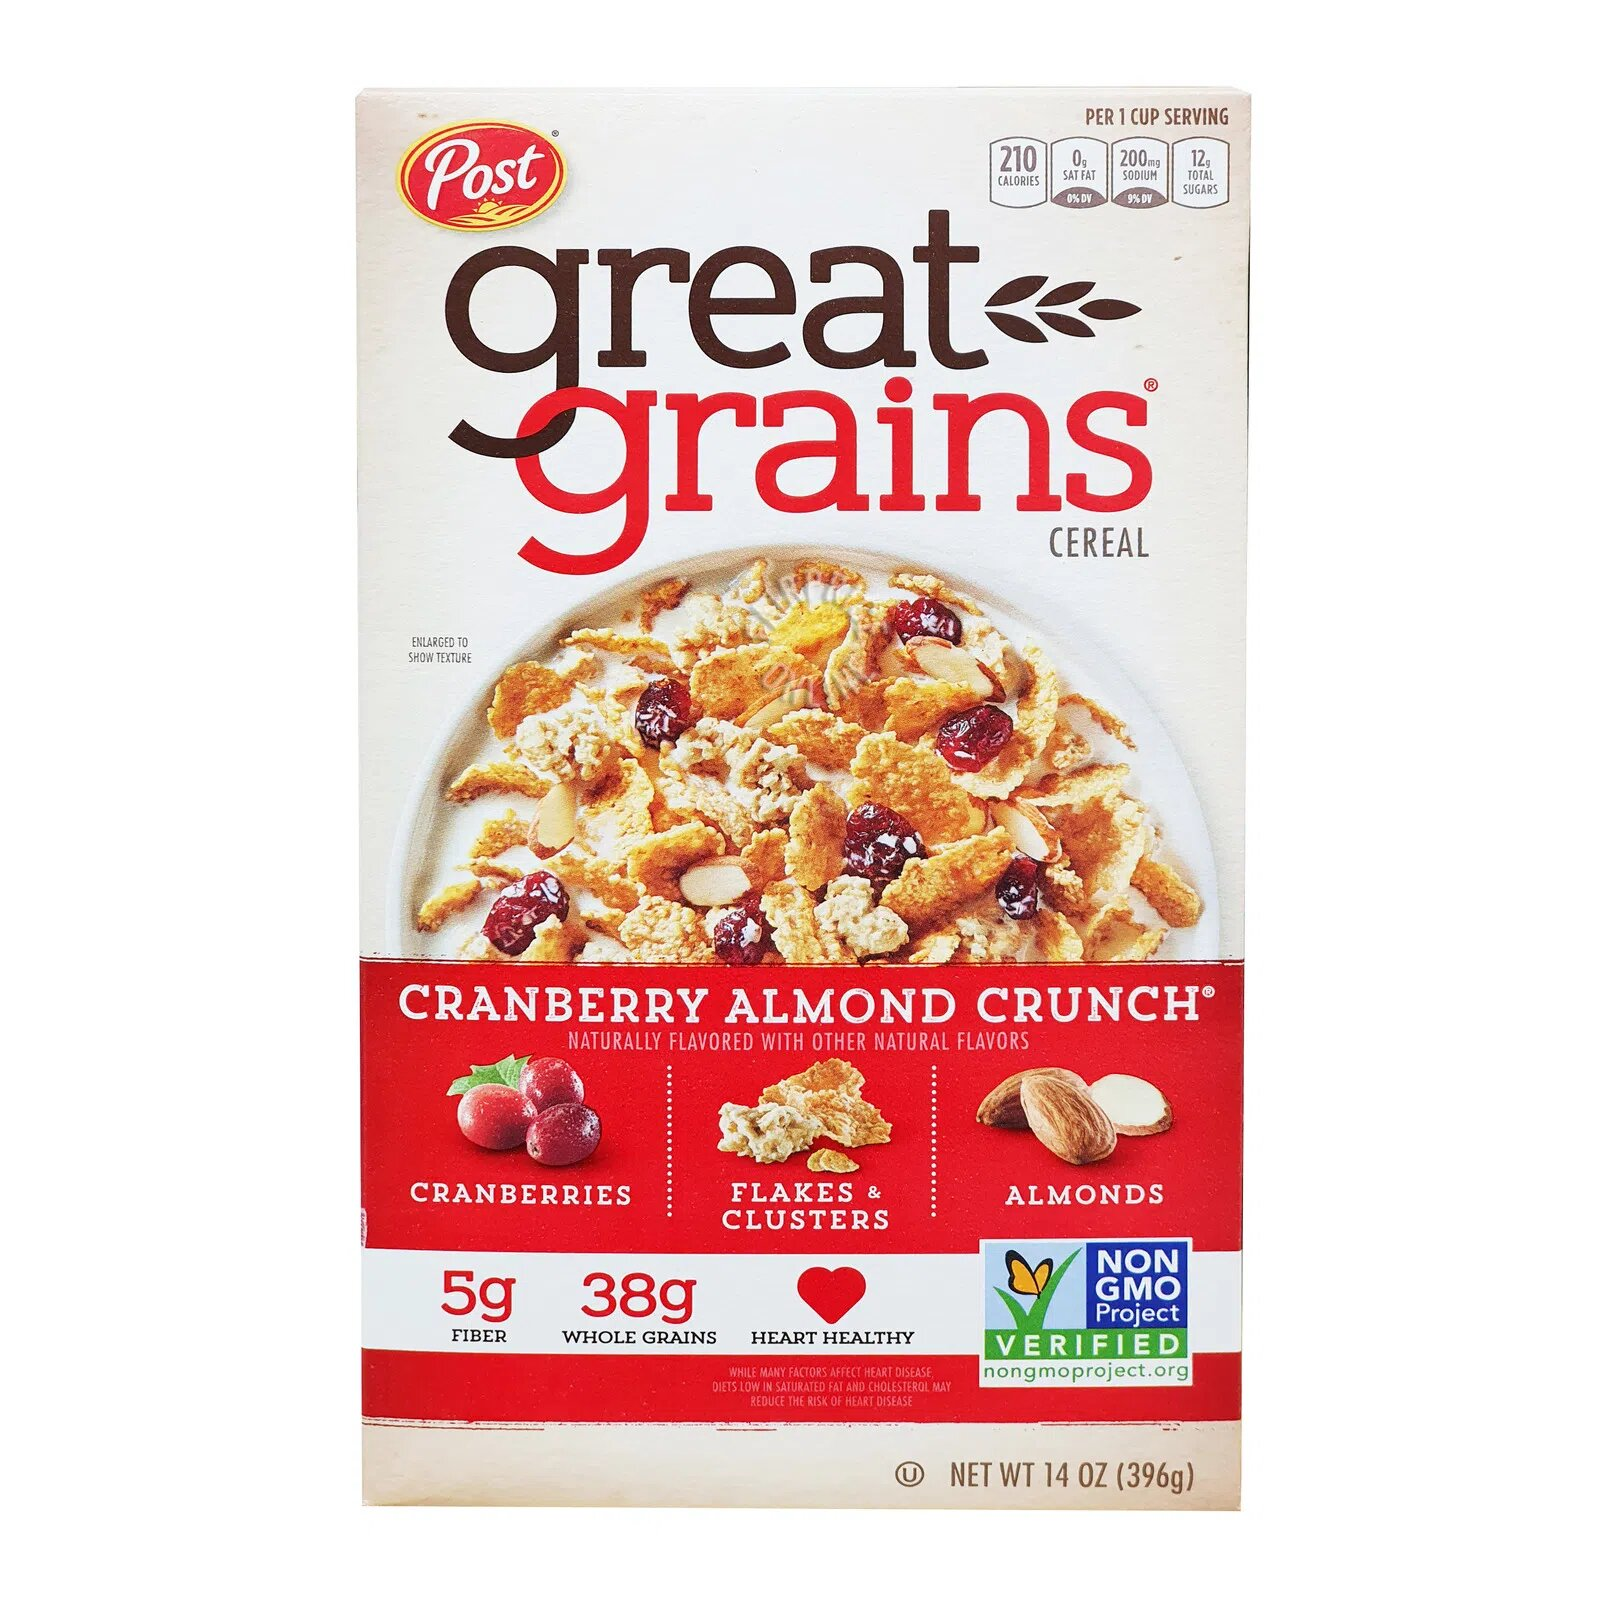 Post Great Grains Cereal - Cranberry Almond Crunch